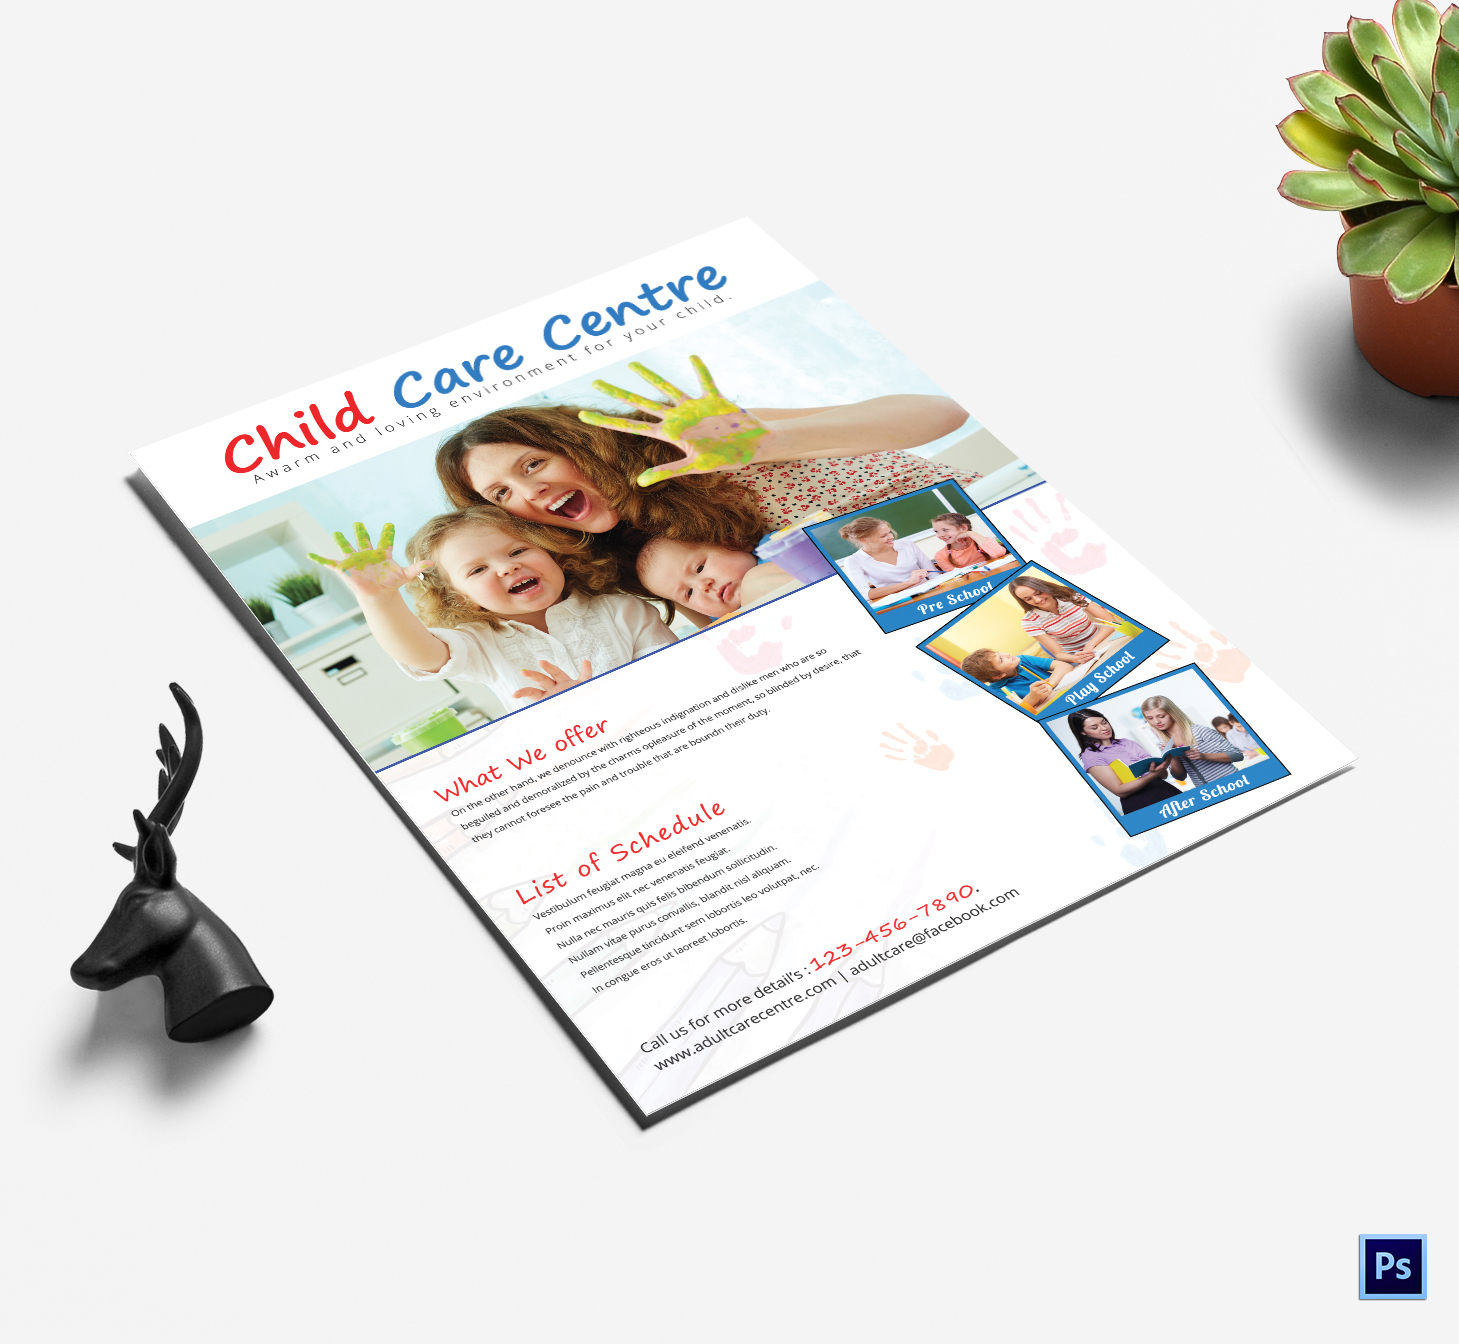 25 Beautiful Free & Paid Templates For Daycare Flyers Within Daycare Flyers Templates Free